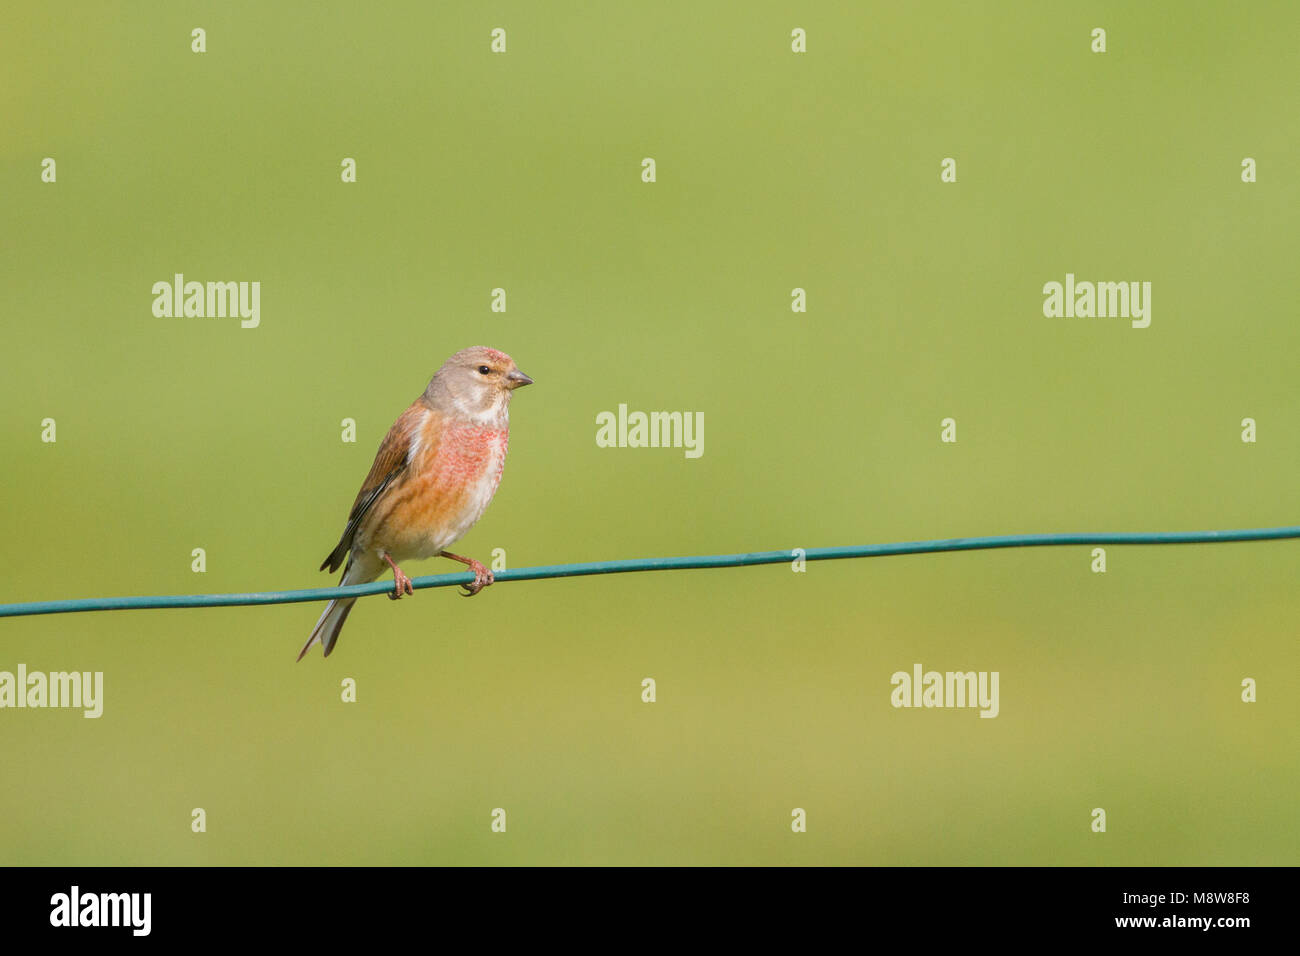 Kneu zit op tak; Common Linnet perched on branch - Stock Image